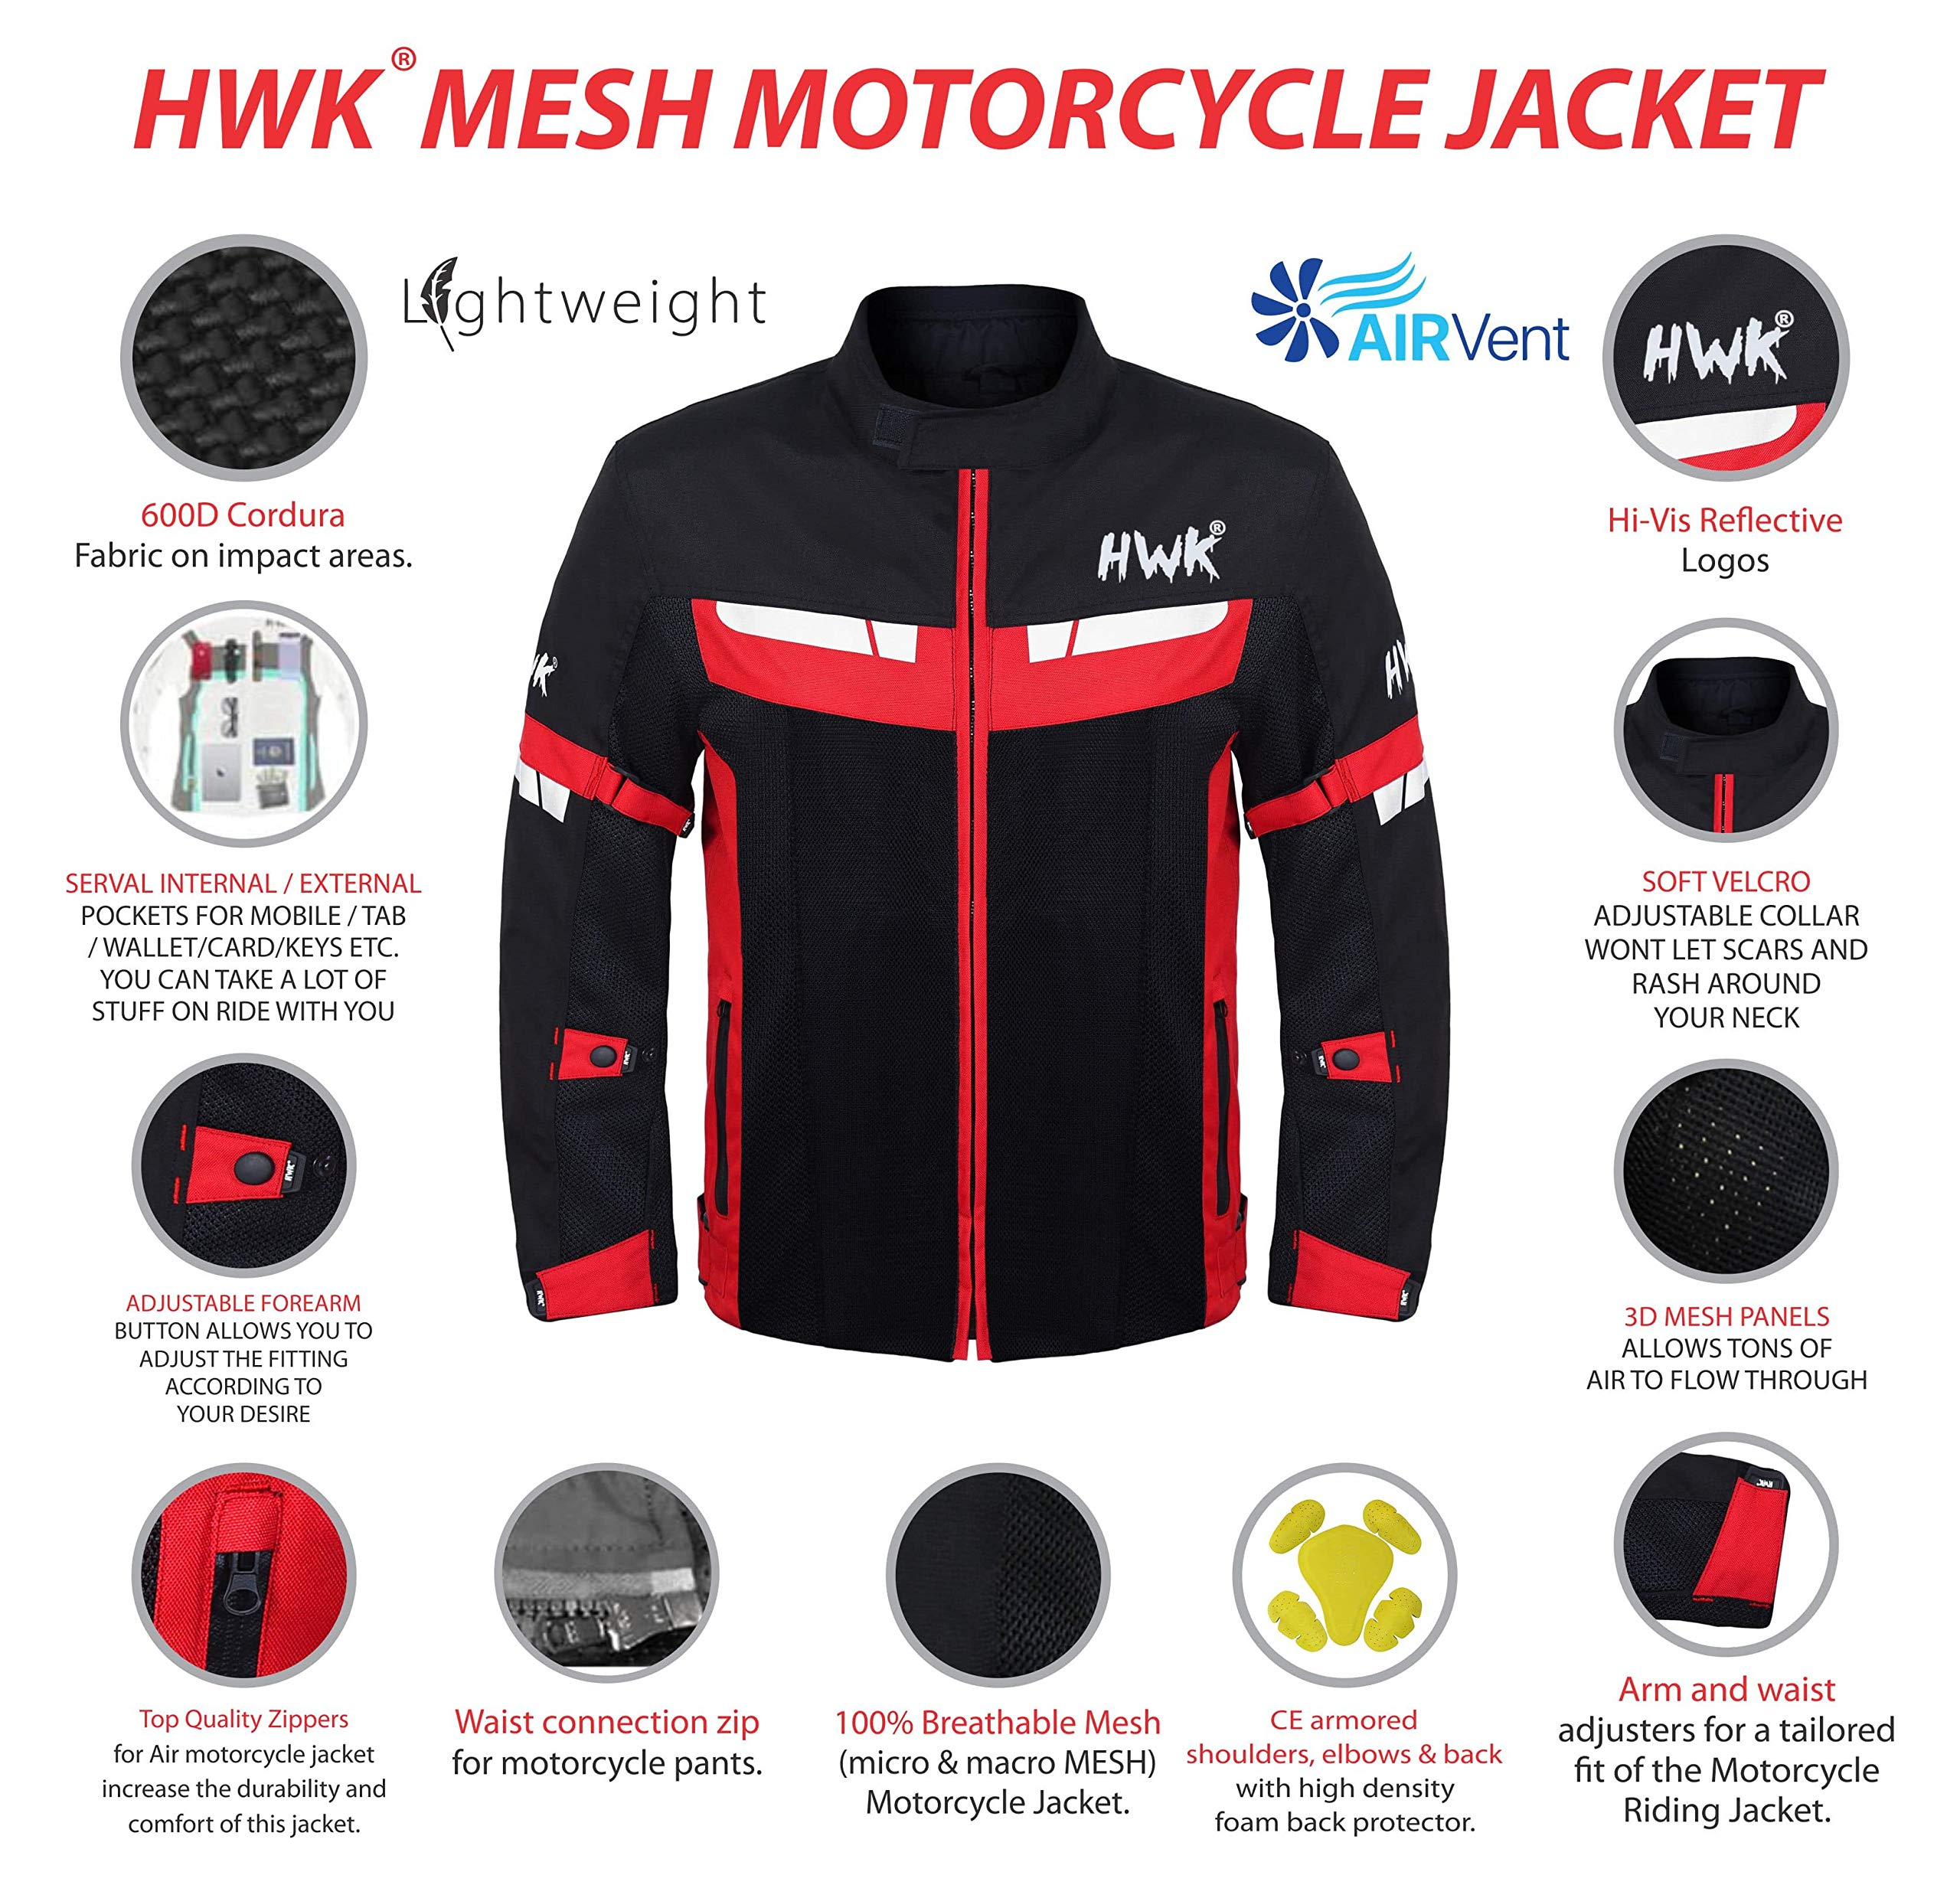 XXXX-Large, Green HWK Mesh Motorcycle Jacket Riding Air Motorbike Jacket Biker CE Armored Breathable